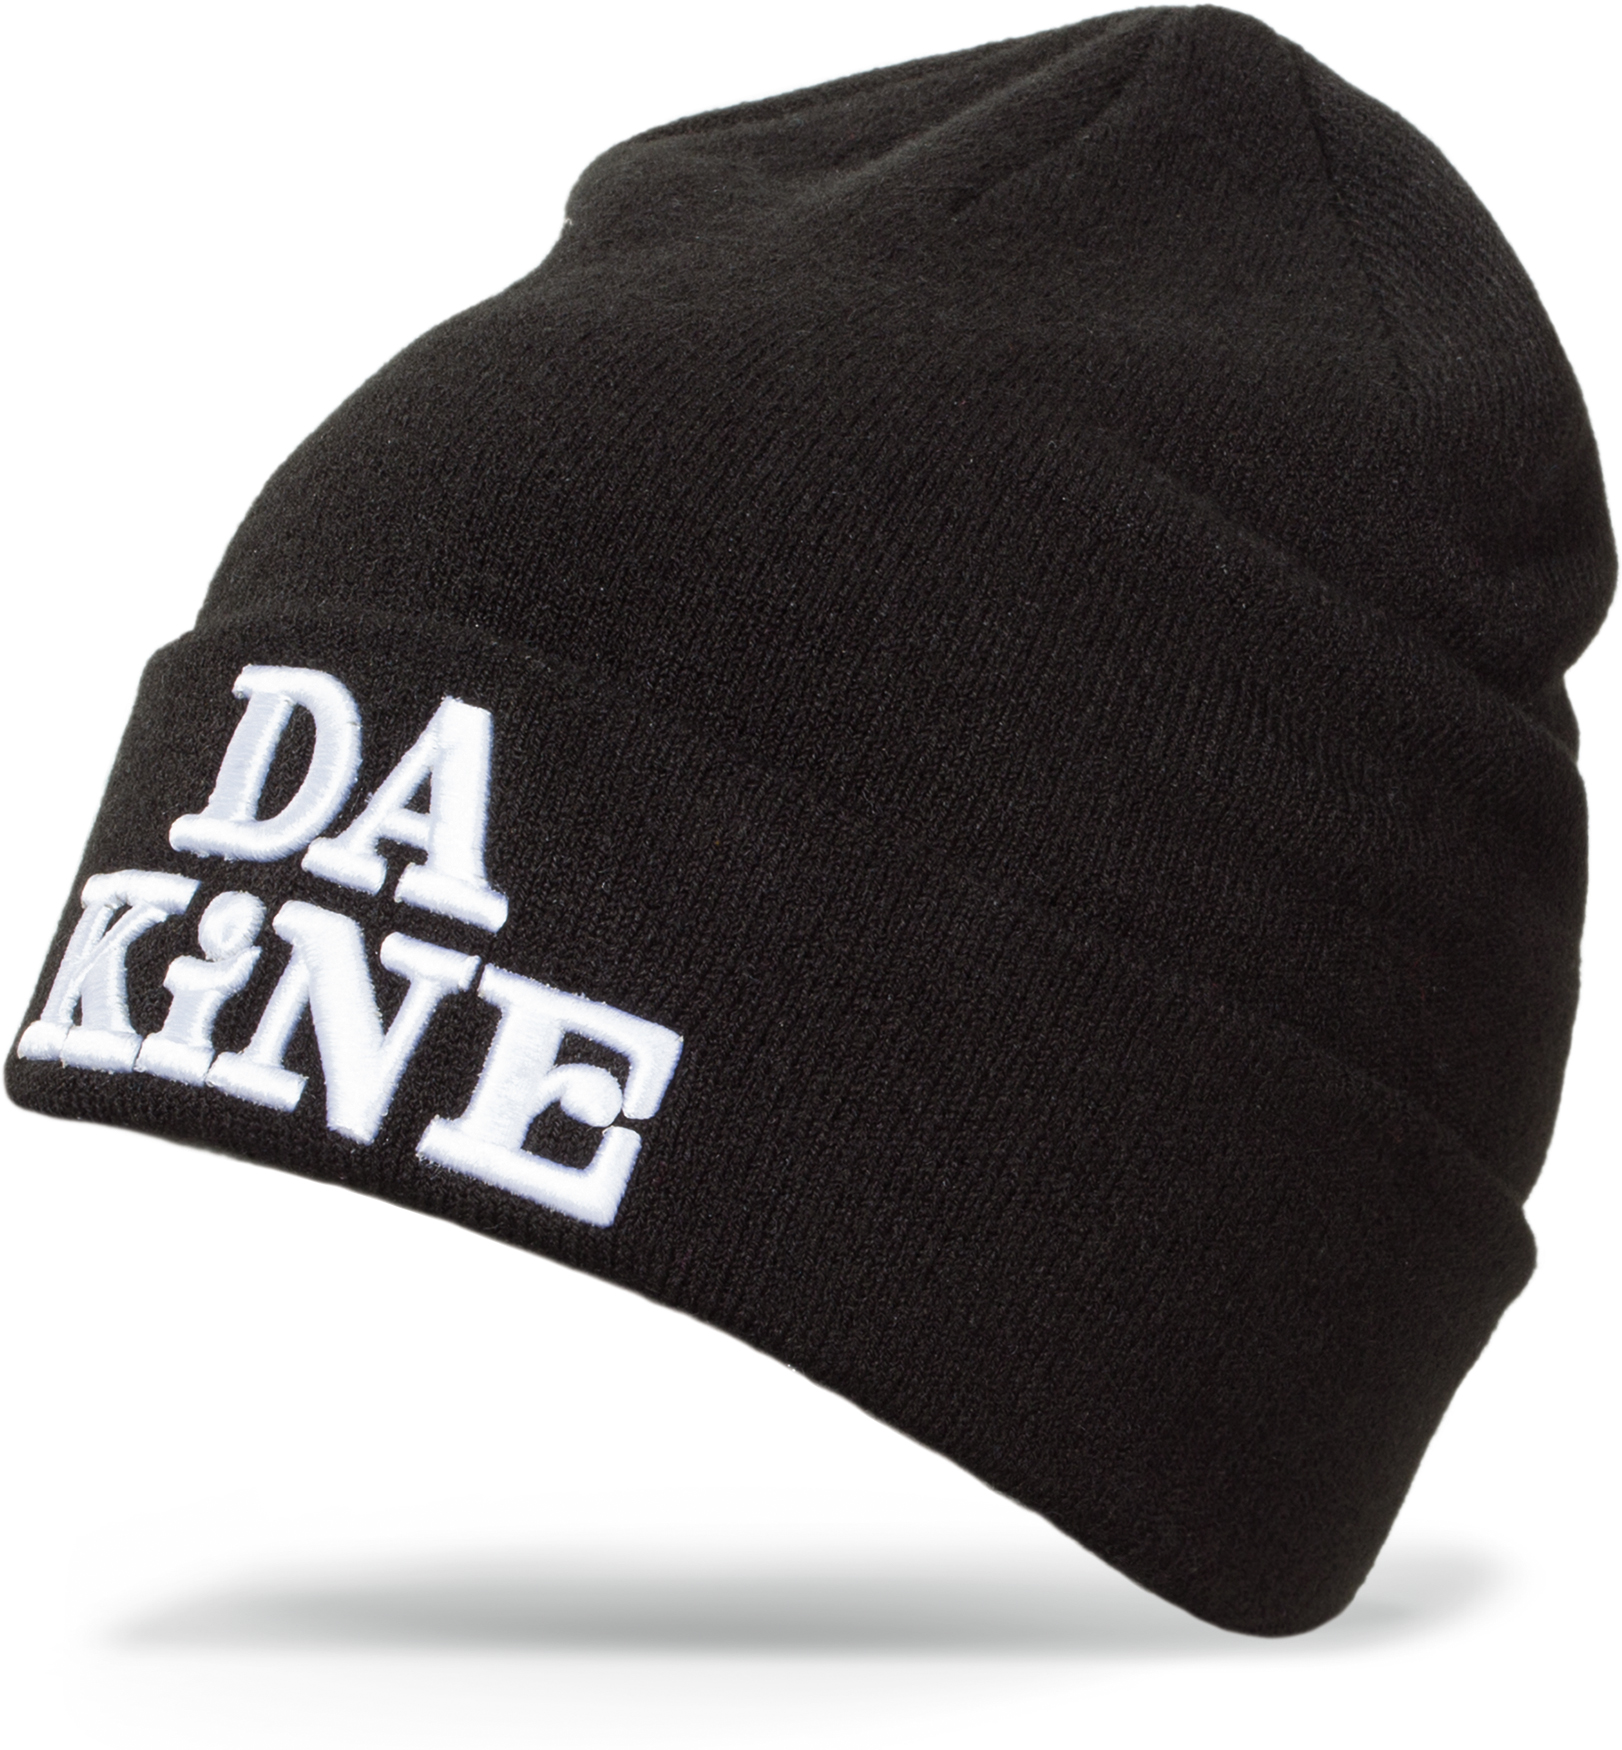 Product image of Dakine Taryn Womens Beanie Hat in Black